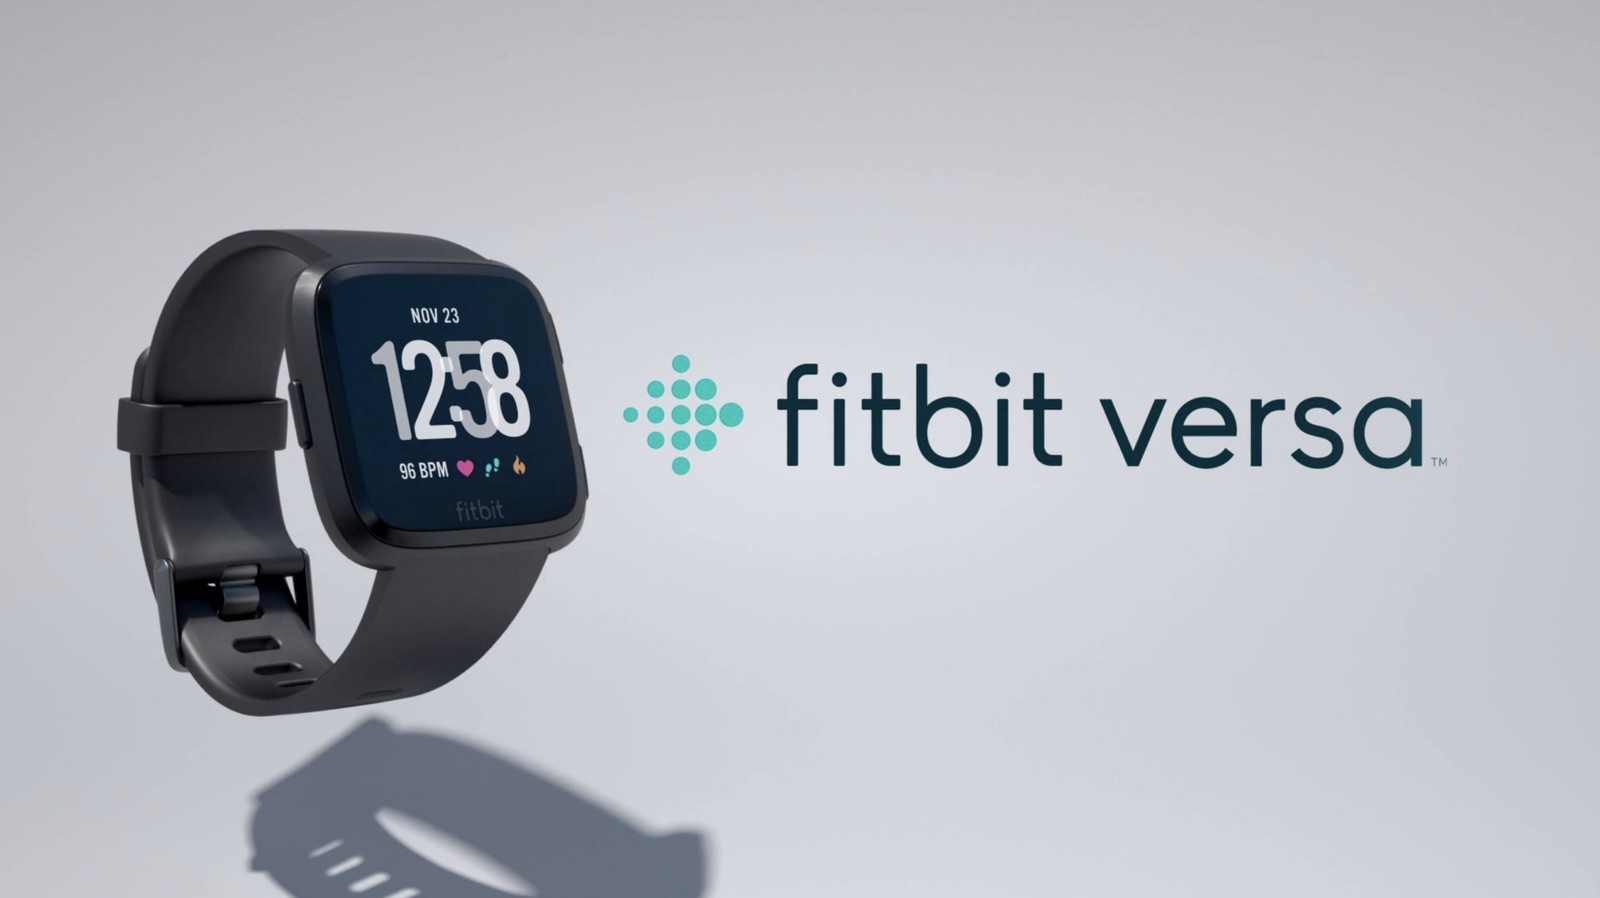 fitbit versa watch 2019 hottest fitness products